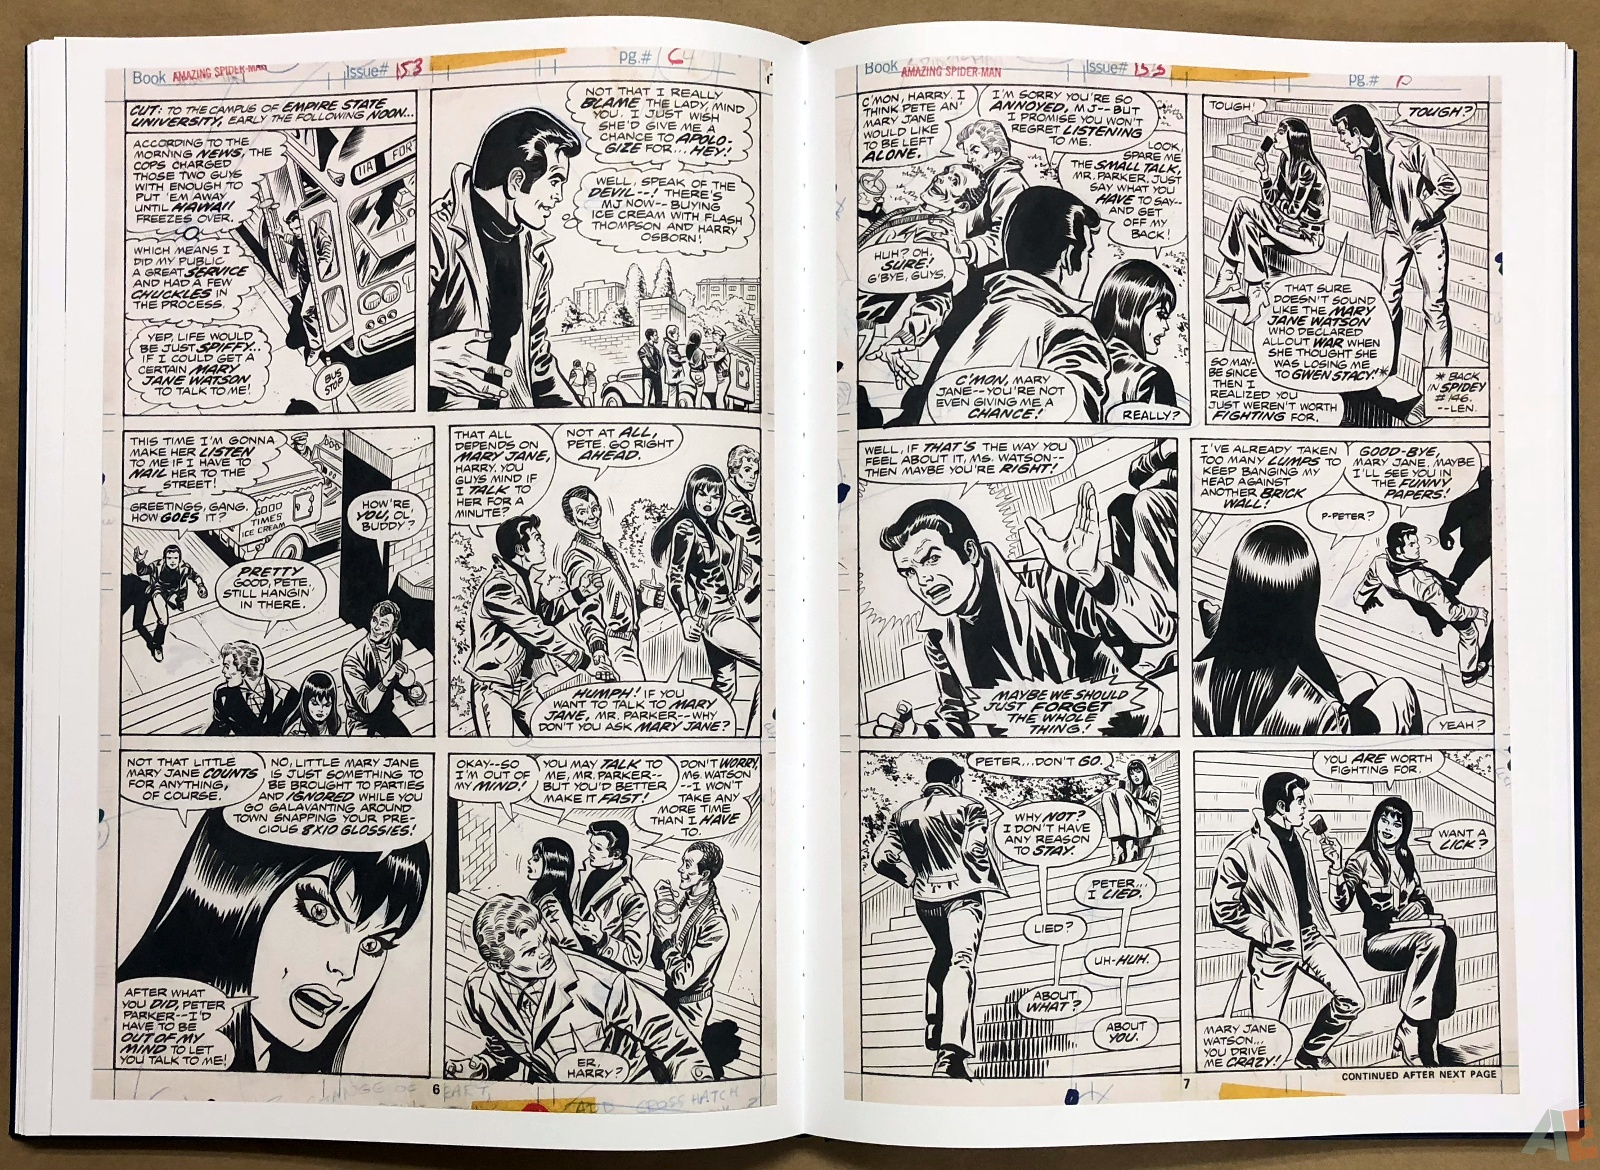 Ross Andru's The Amazing Spider-Man Artist's Edition